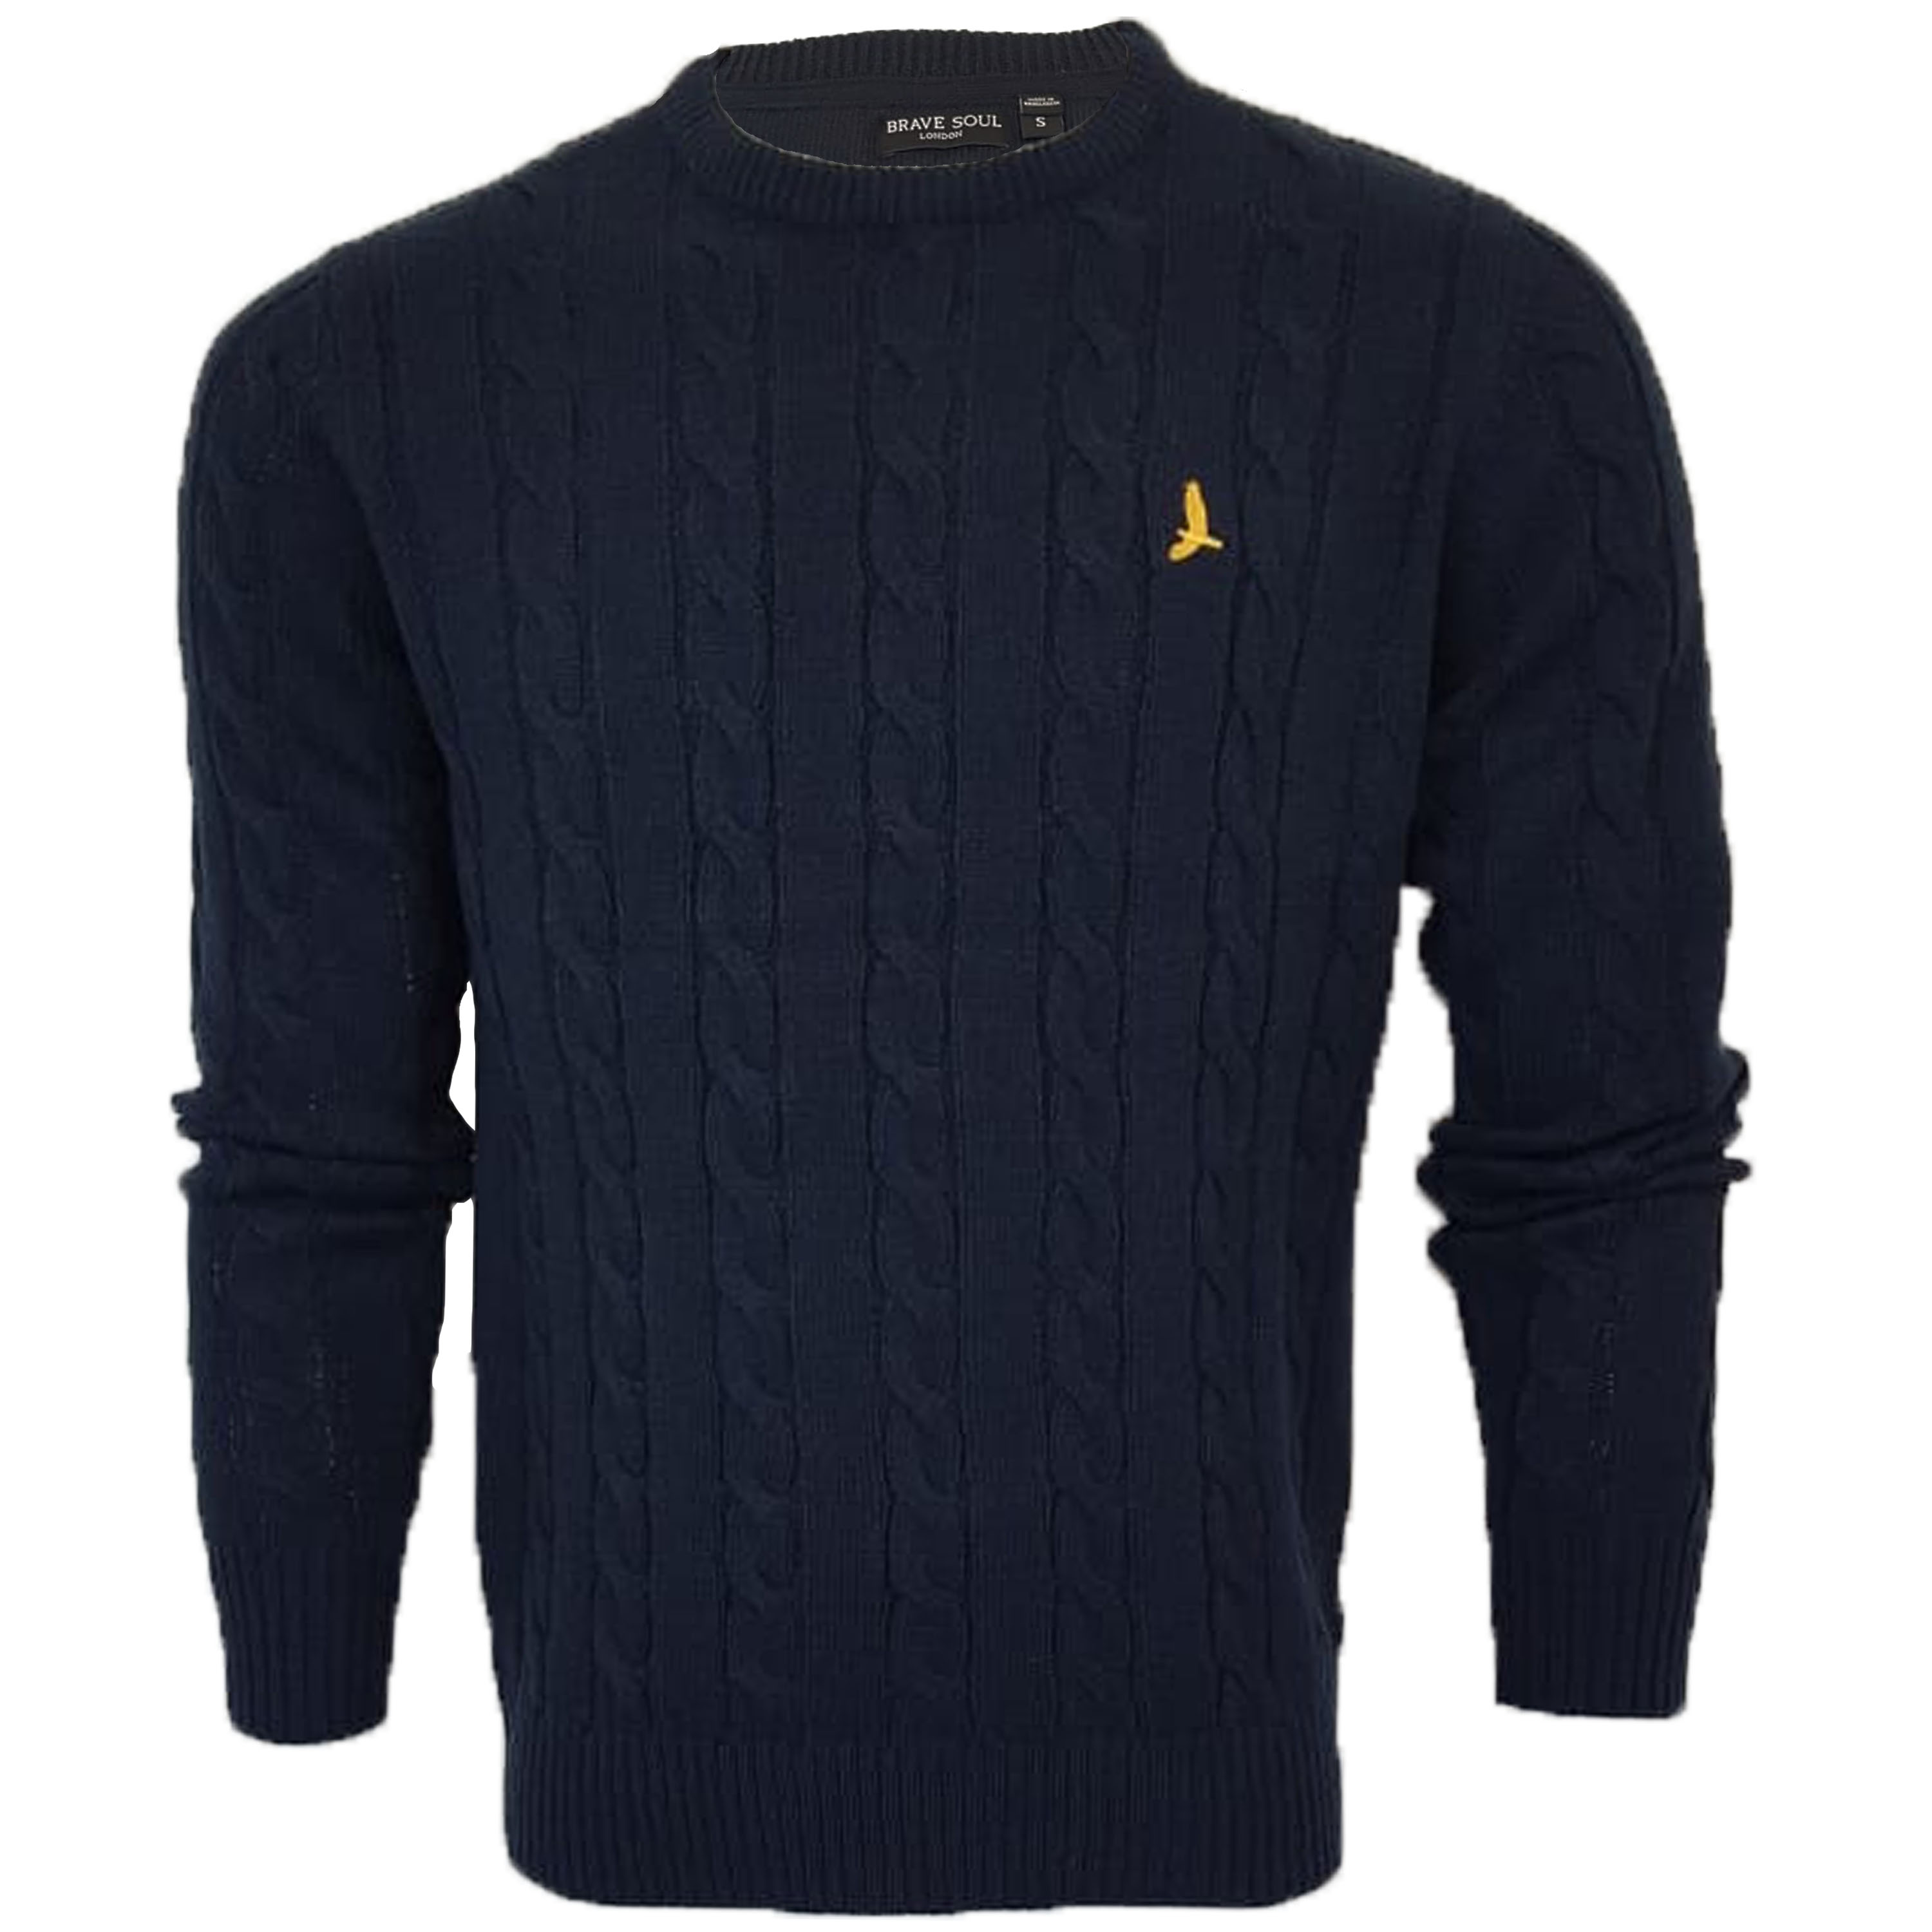 Mens-Jumper-Brave-Soul-Knitted-Sweater-Pullover-GOODWIN-Crew-Neck-Top-Winter-New thumbnail 11